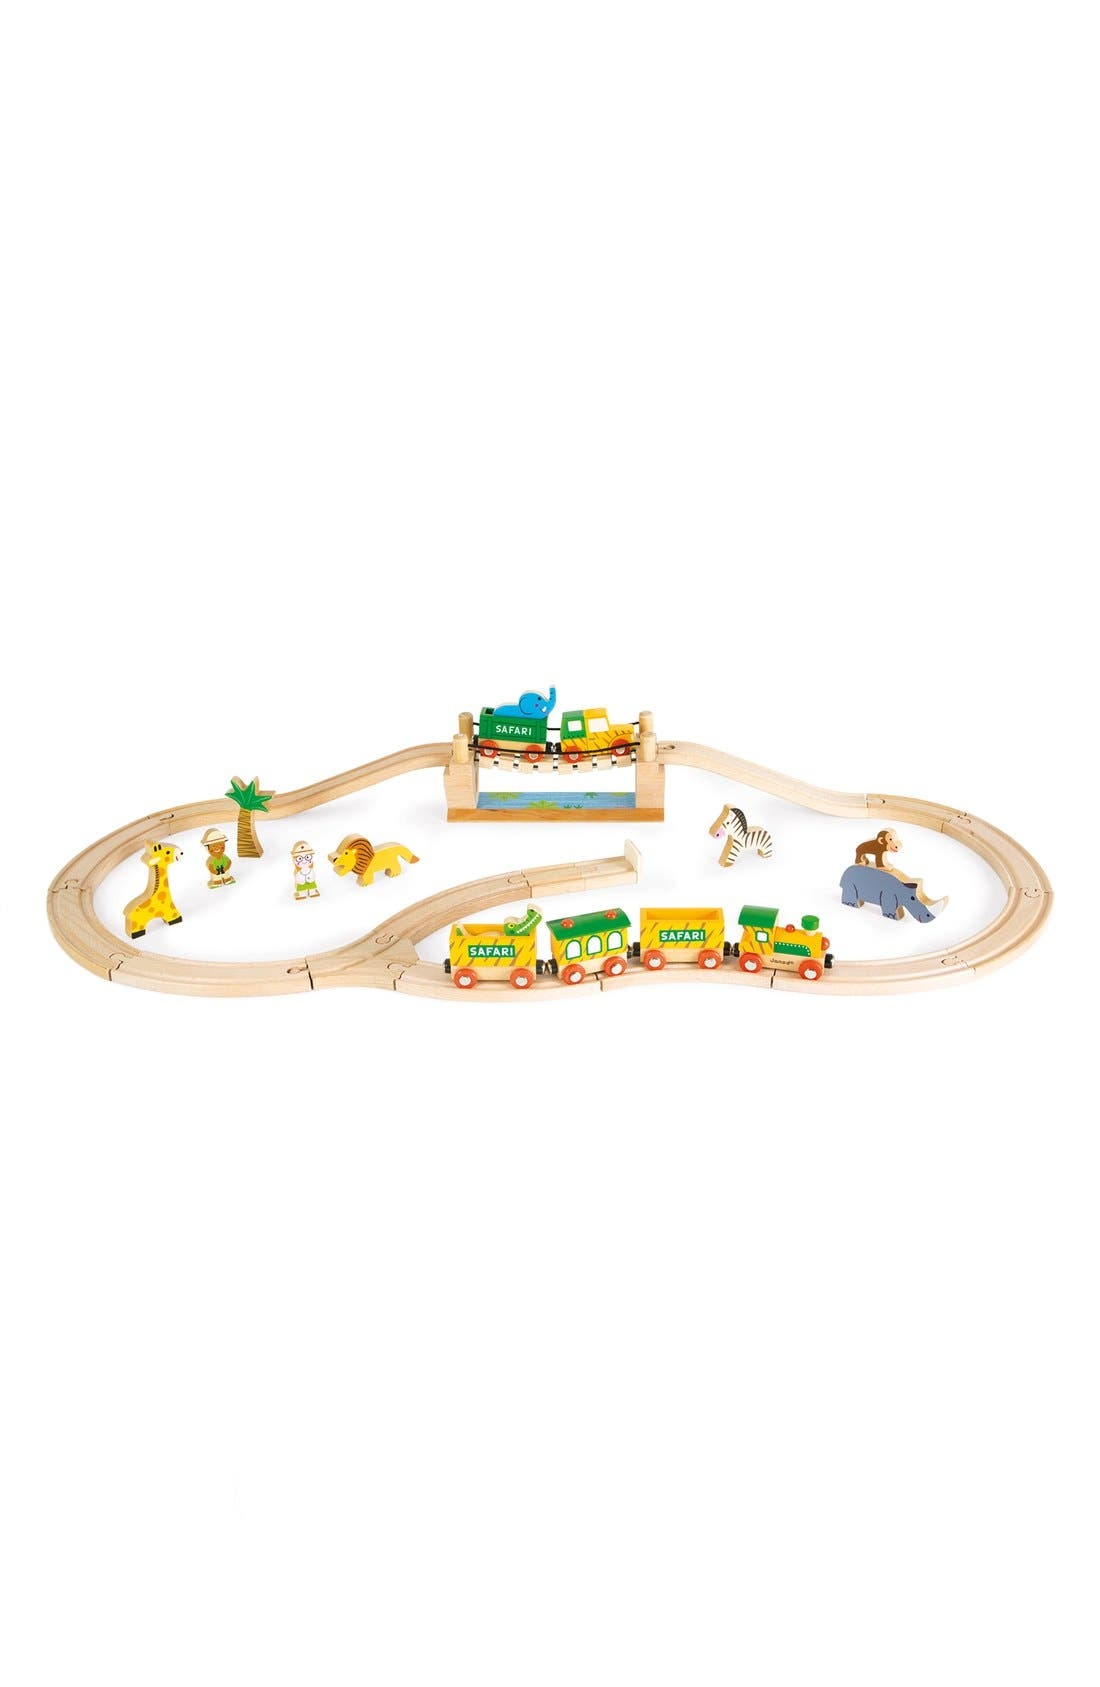 'Story Express - Safari' Train Set,                         Main,                         color, Red